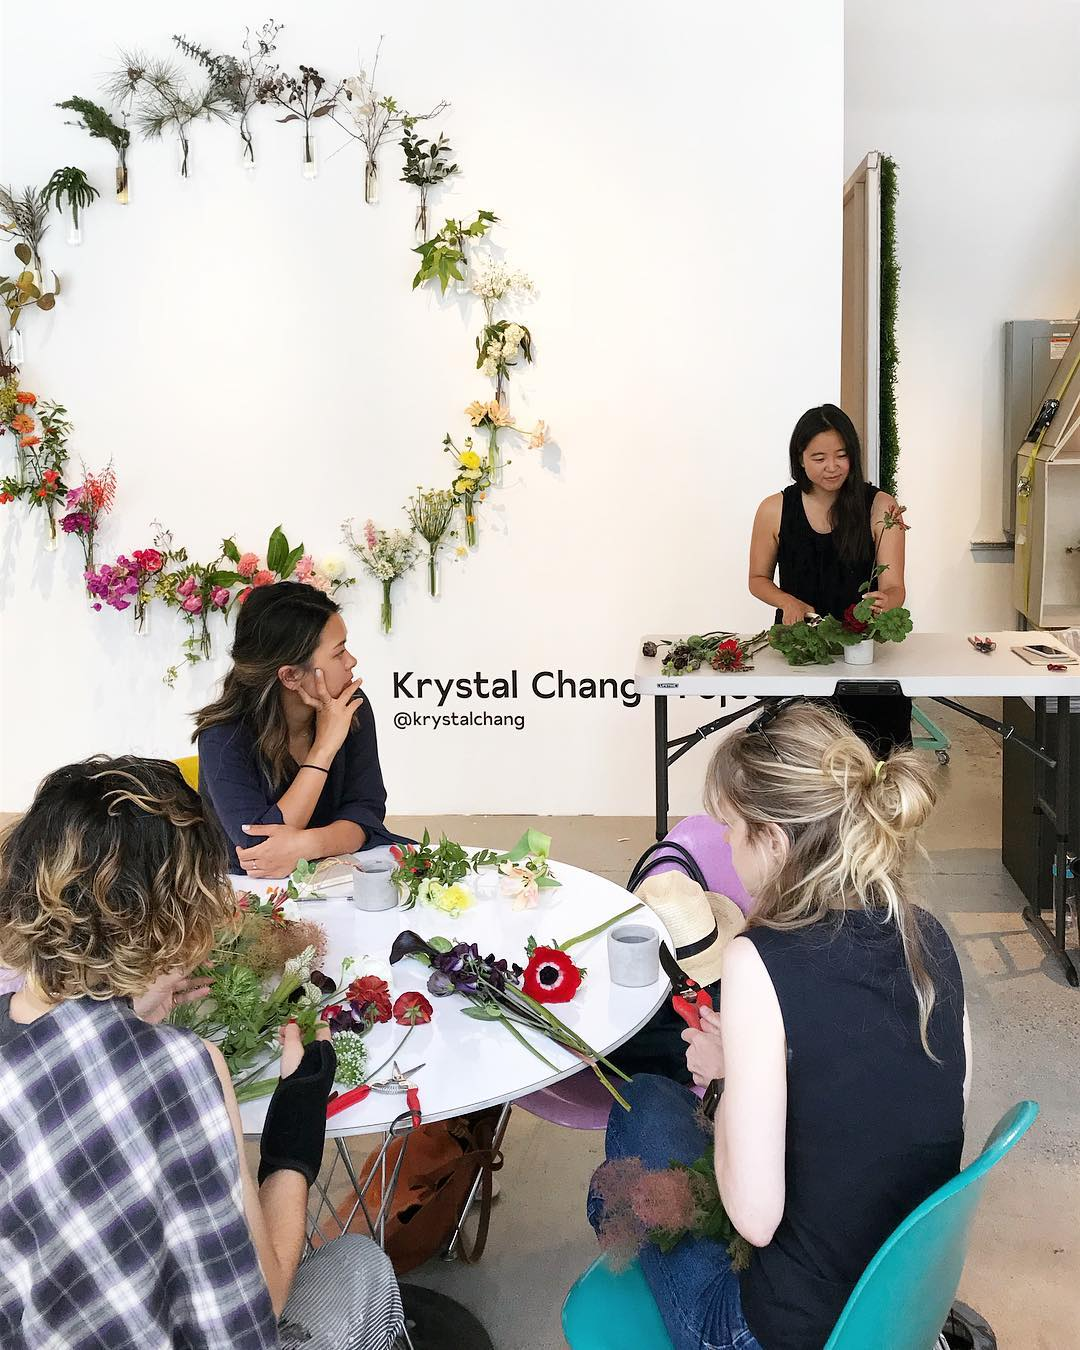 """LA Design Festival Workshops   Guests were encouraged to exercise their own creativity by participating in public workshops, and learn how to create """"freakebana"""" floral arrangements, cheese & charcuterie boards, concrete planters, and more."""